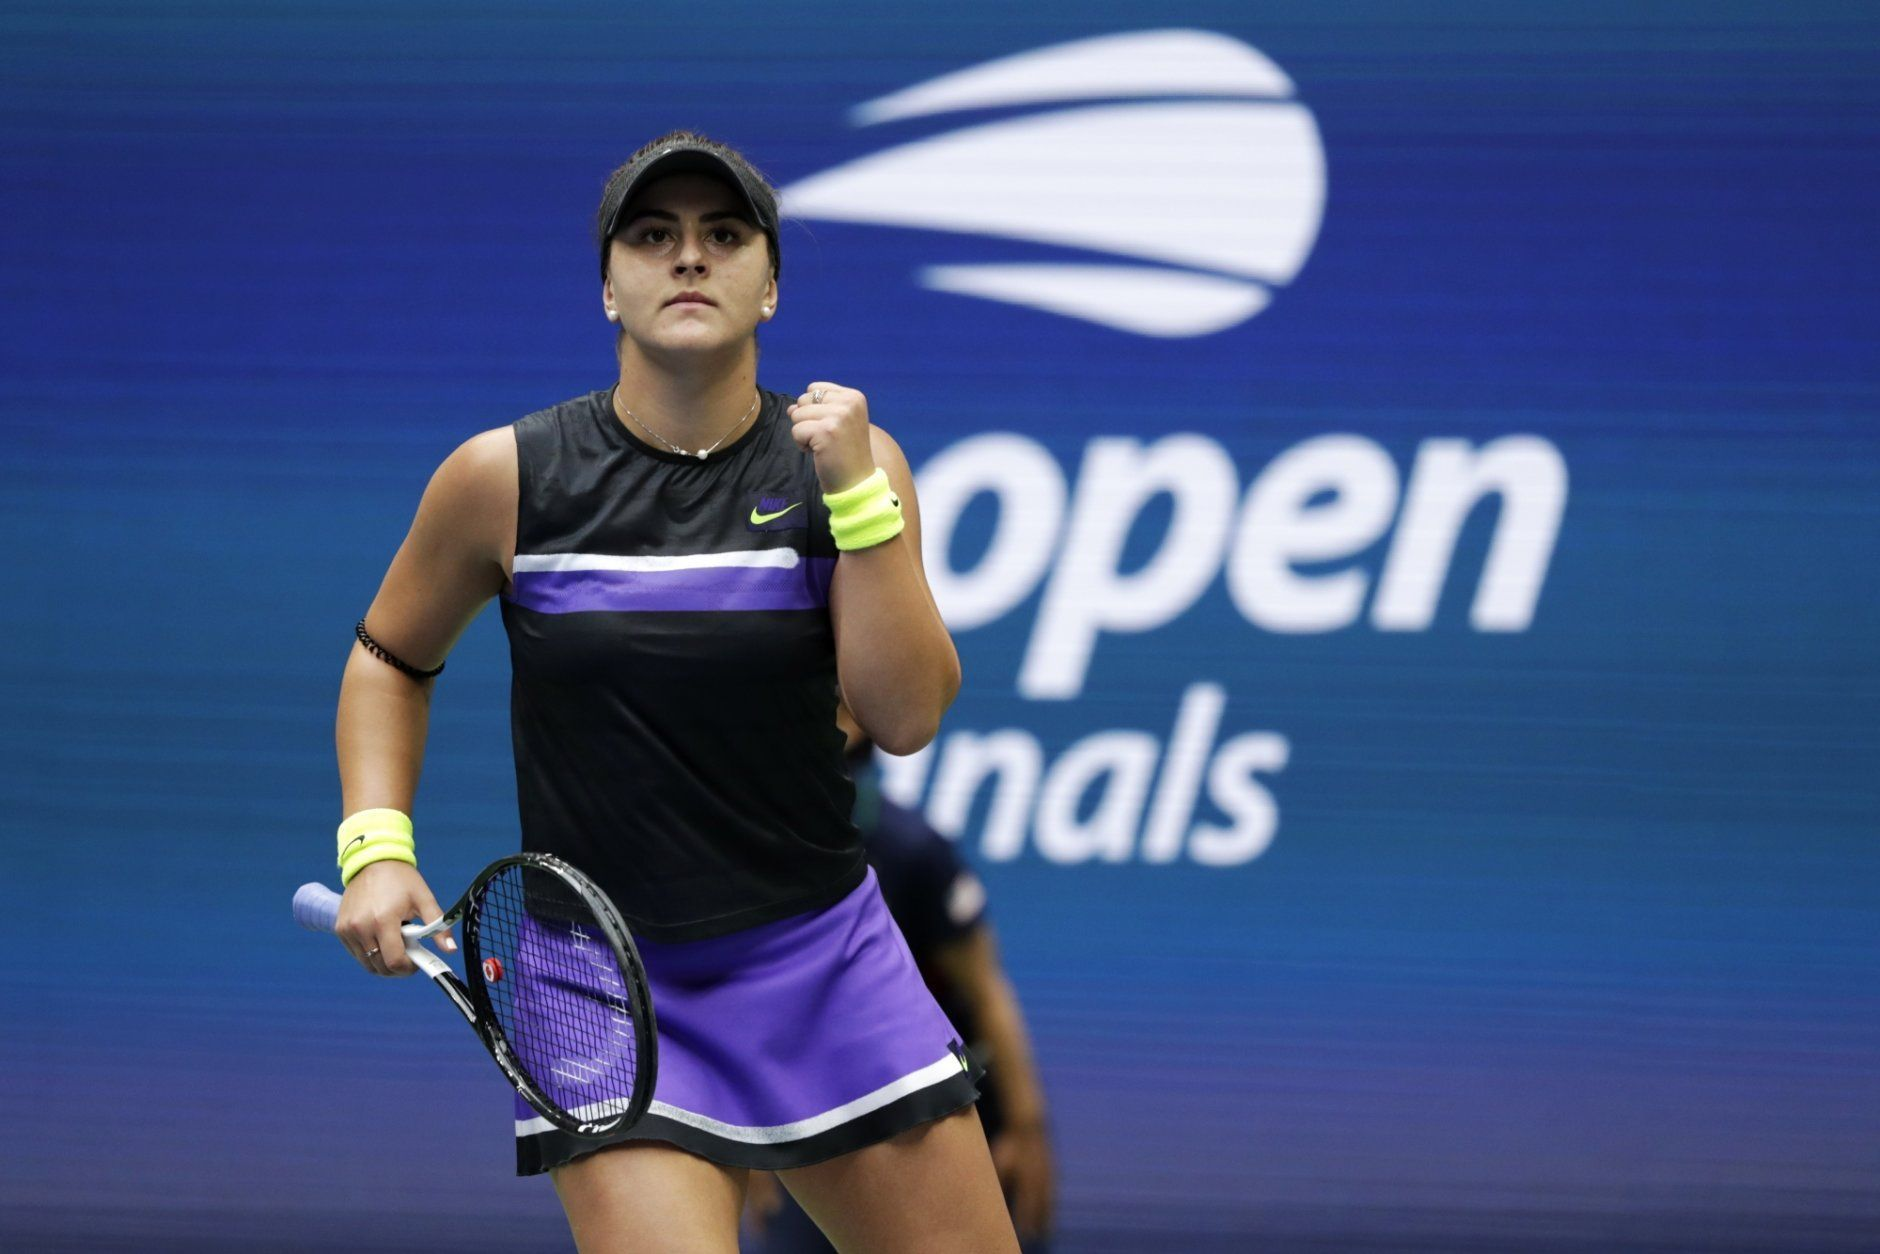 Bianca Andreescu calls it a day on 2020 tennis season